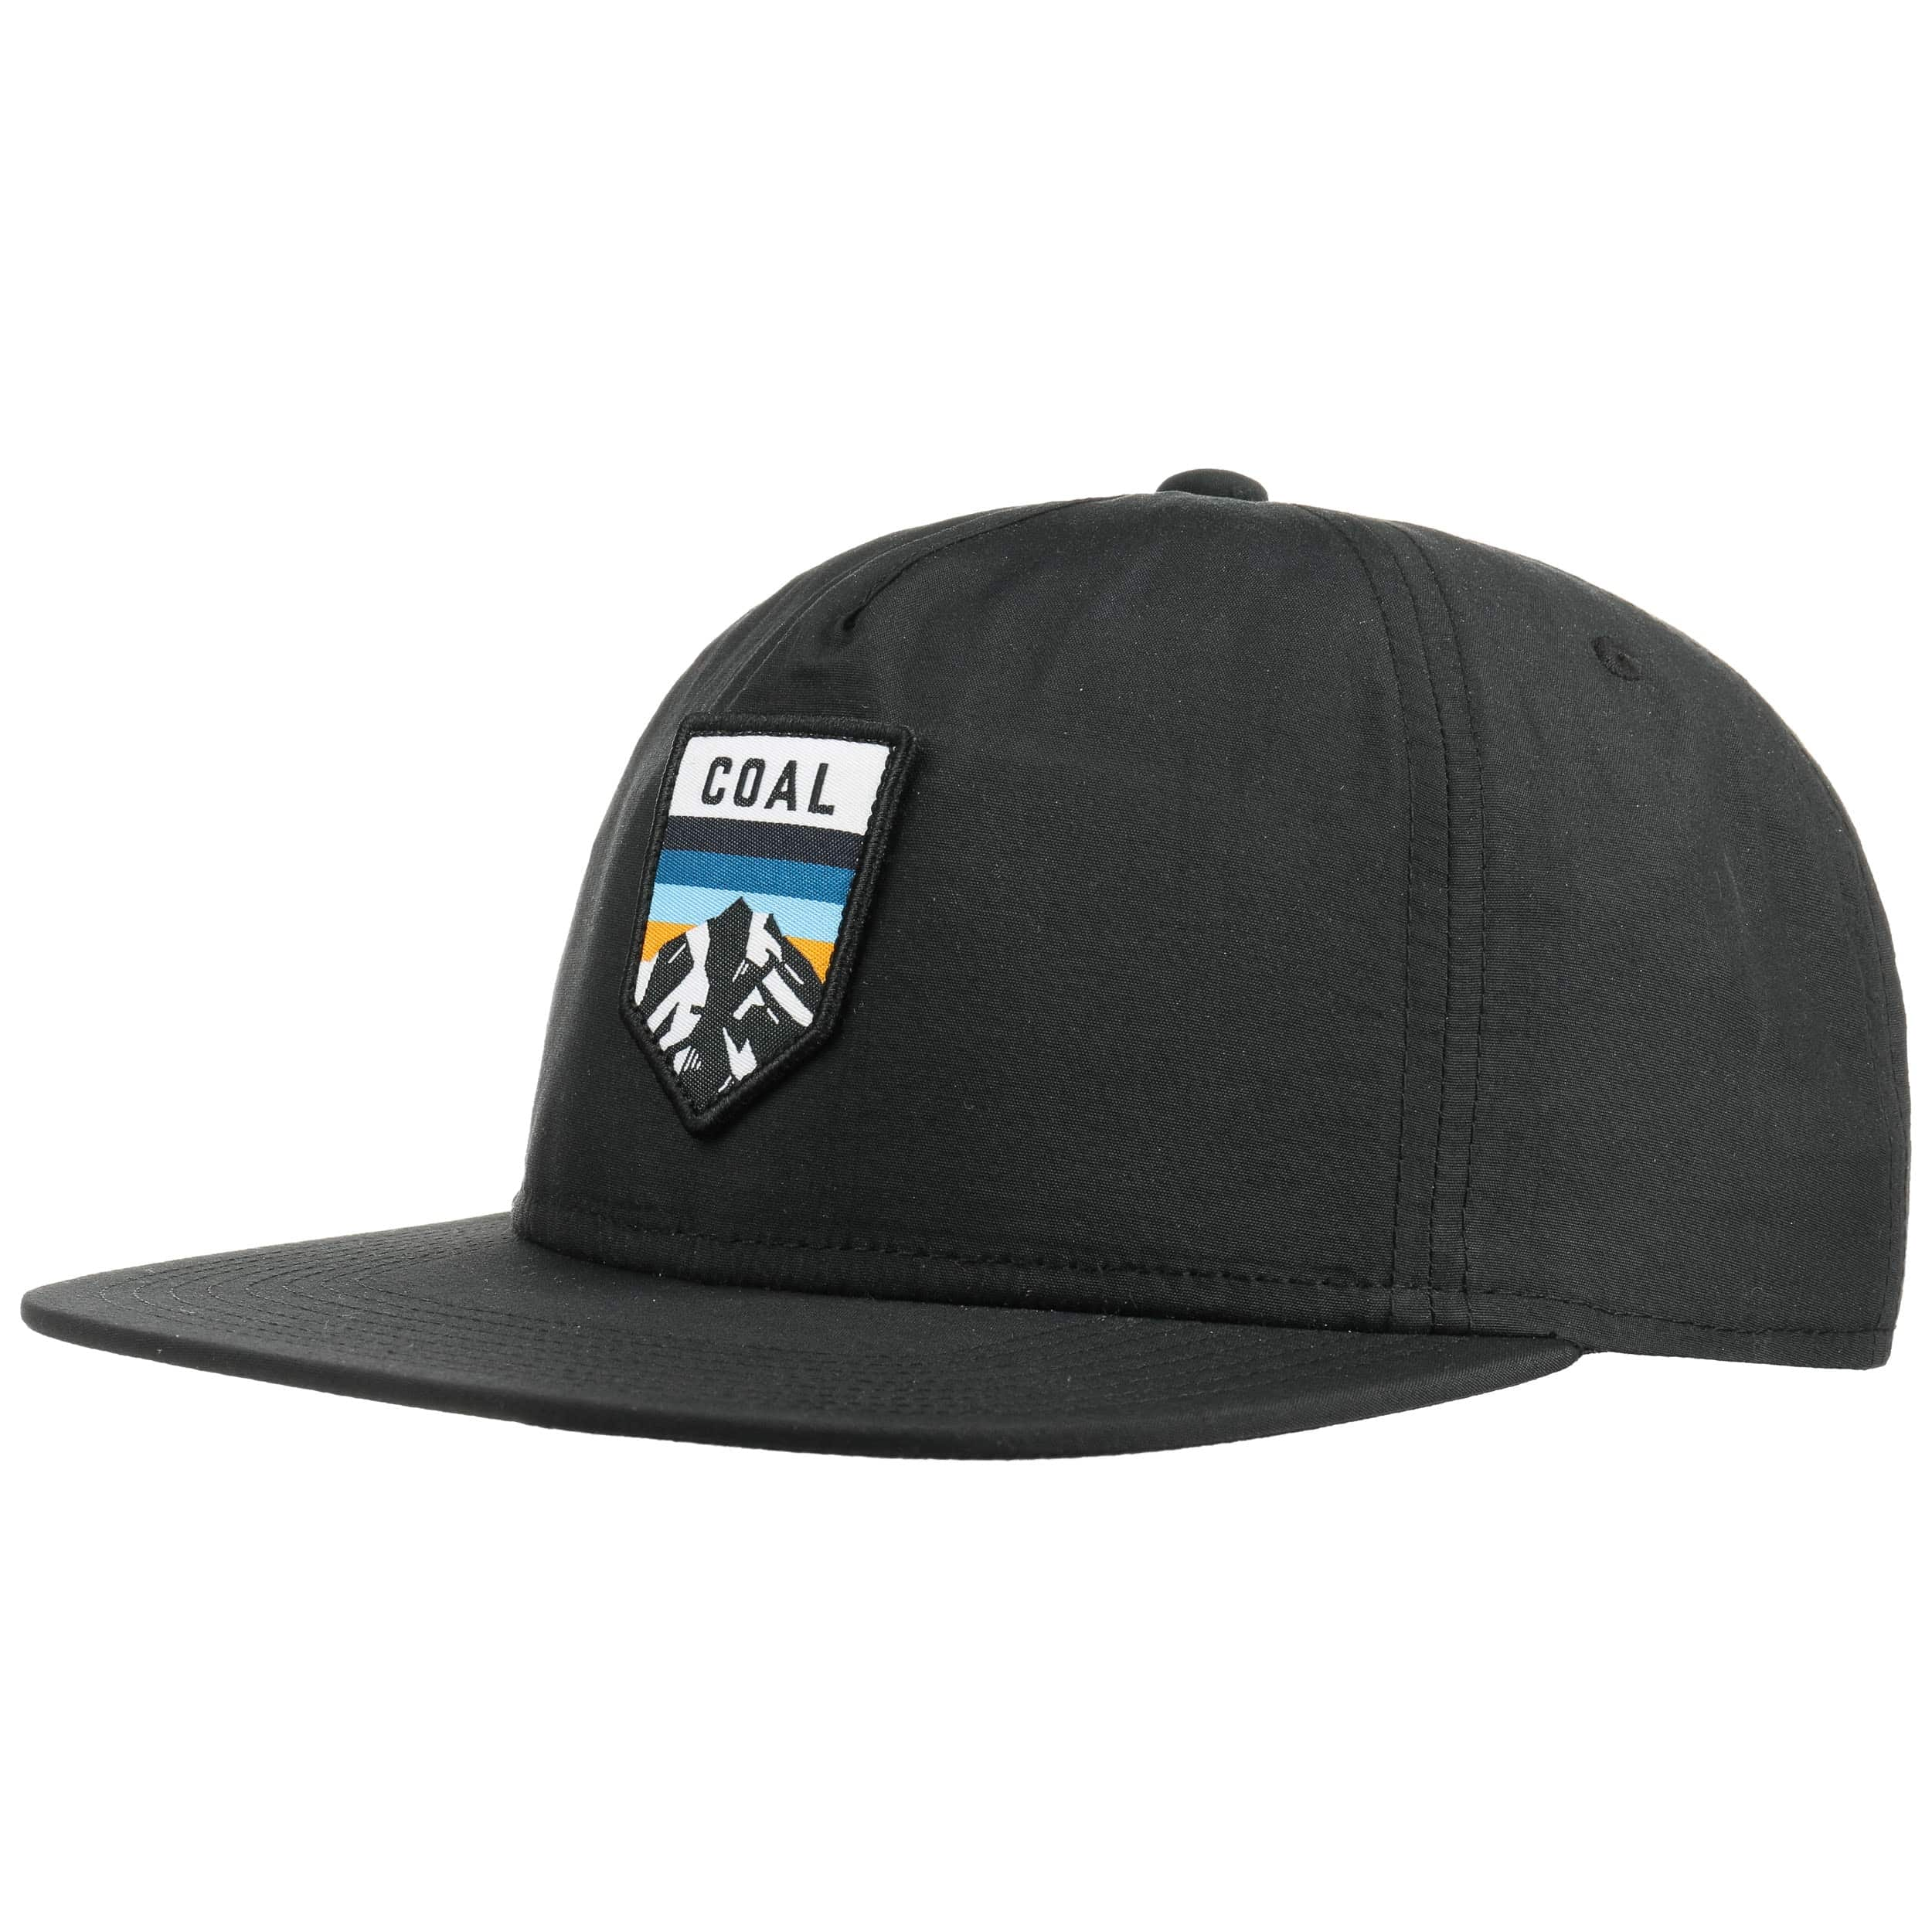 54c350a8c86 ... The Summit Performance Cap by Coal - black 5 ...